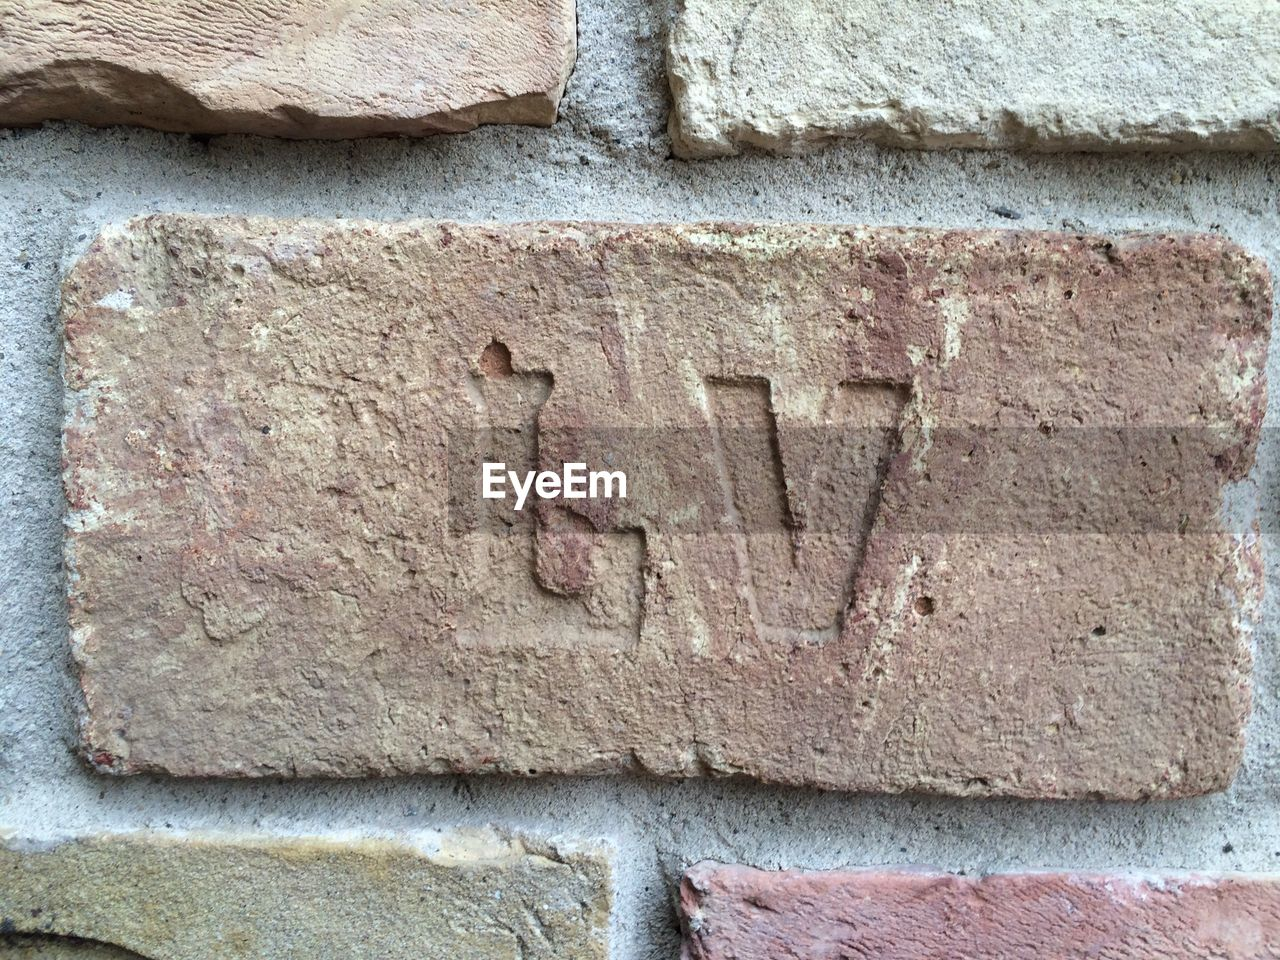 wall - building feature, text, communication, day, architecture, outdoors, brick wall, built structure, close-up, no people, textured, building exterior